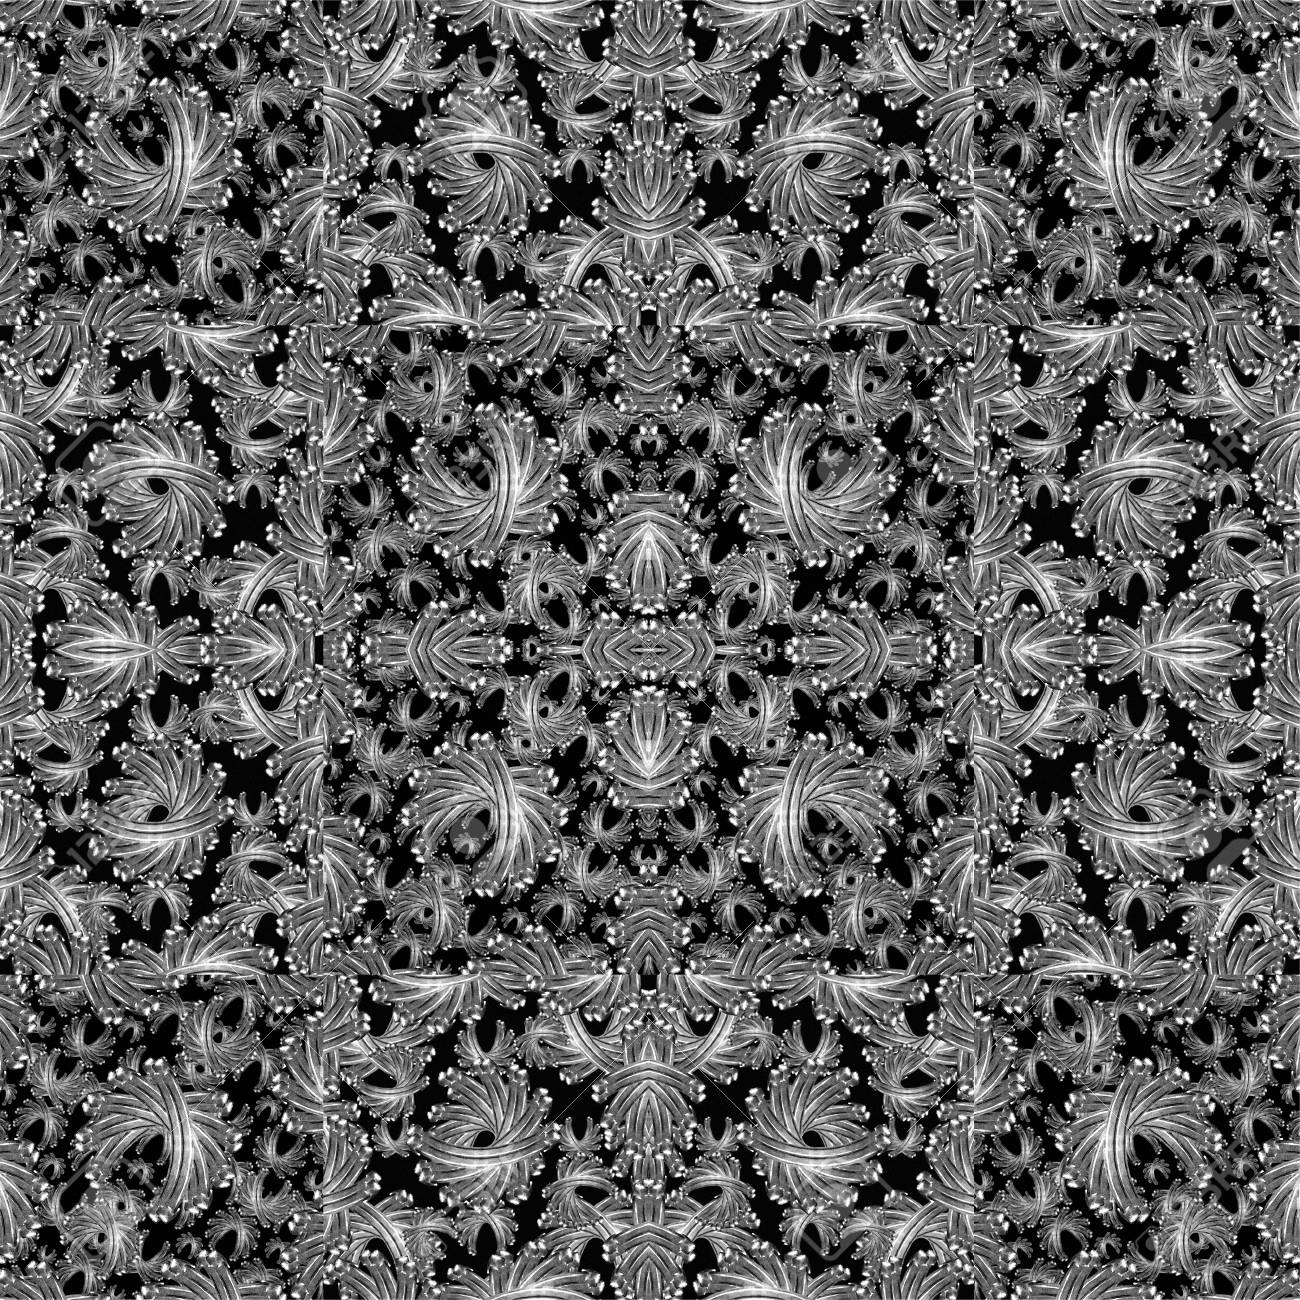 Banco De Imagens   Modern Baroque Style Ornament Decorative Abstract Shapes  Pattern Mosaic In Cold Tones And White Background.